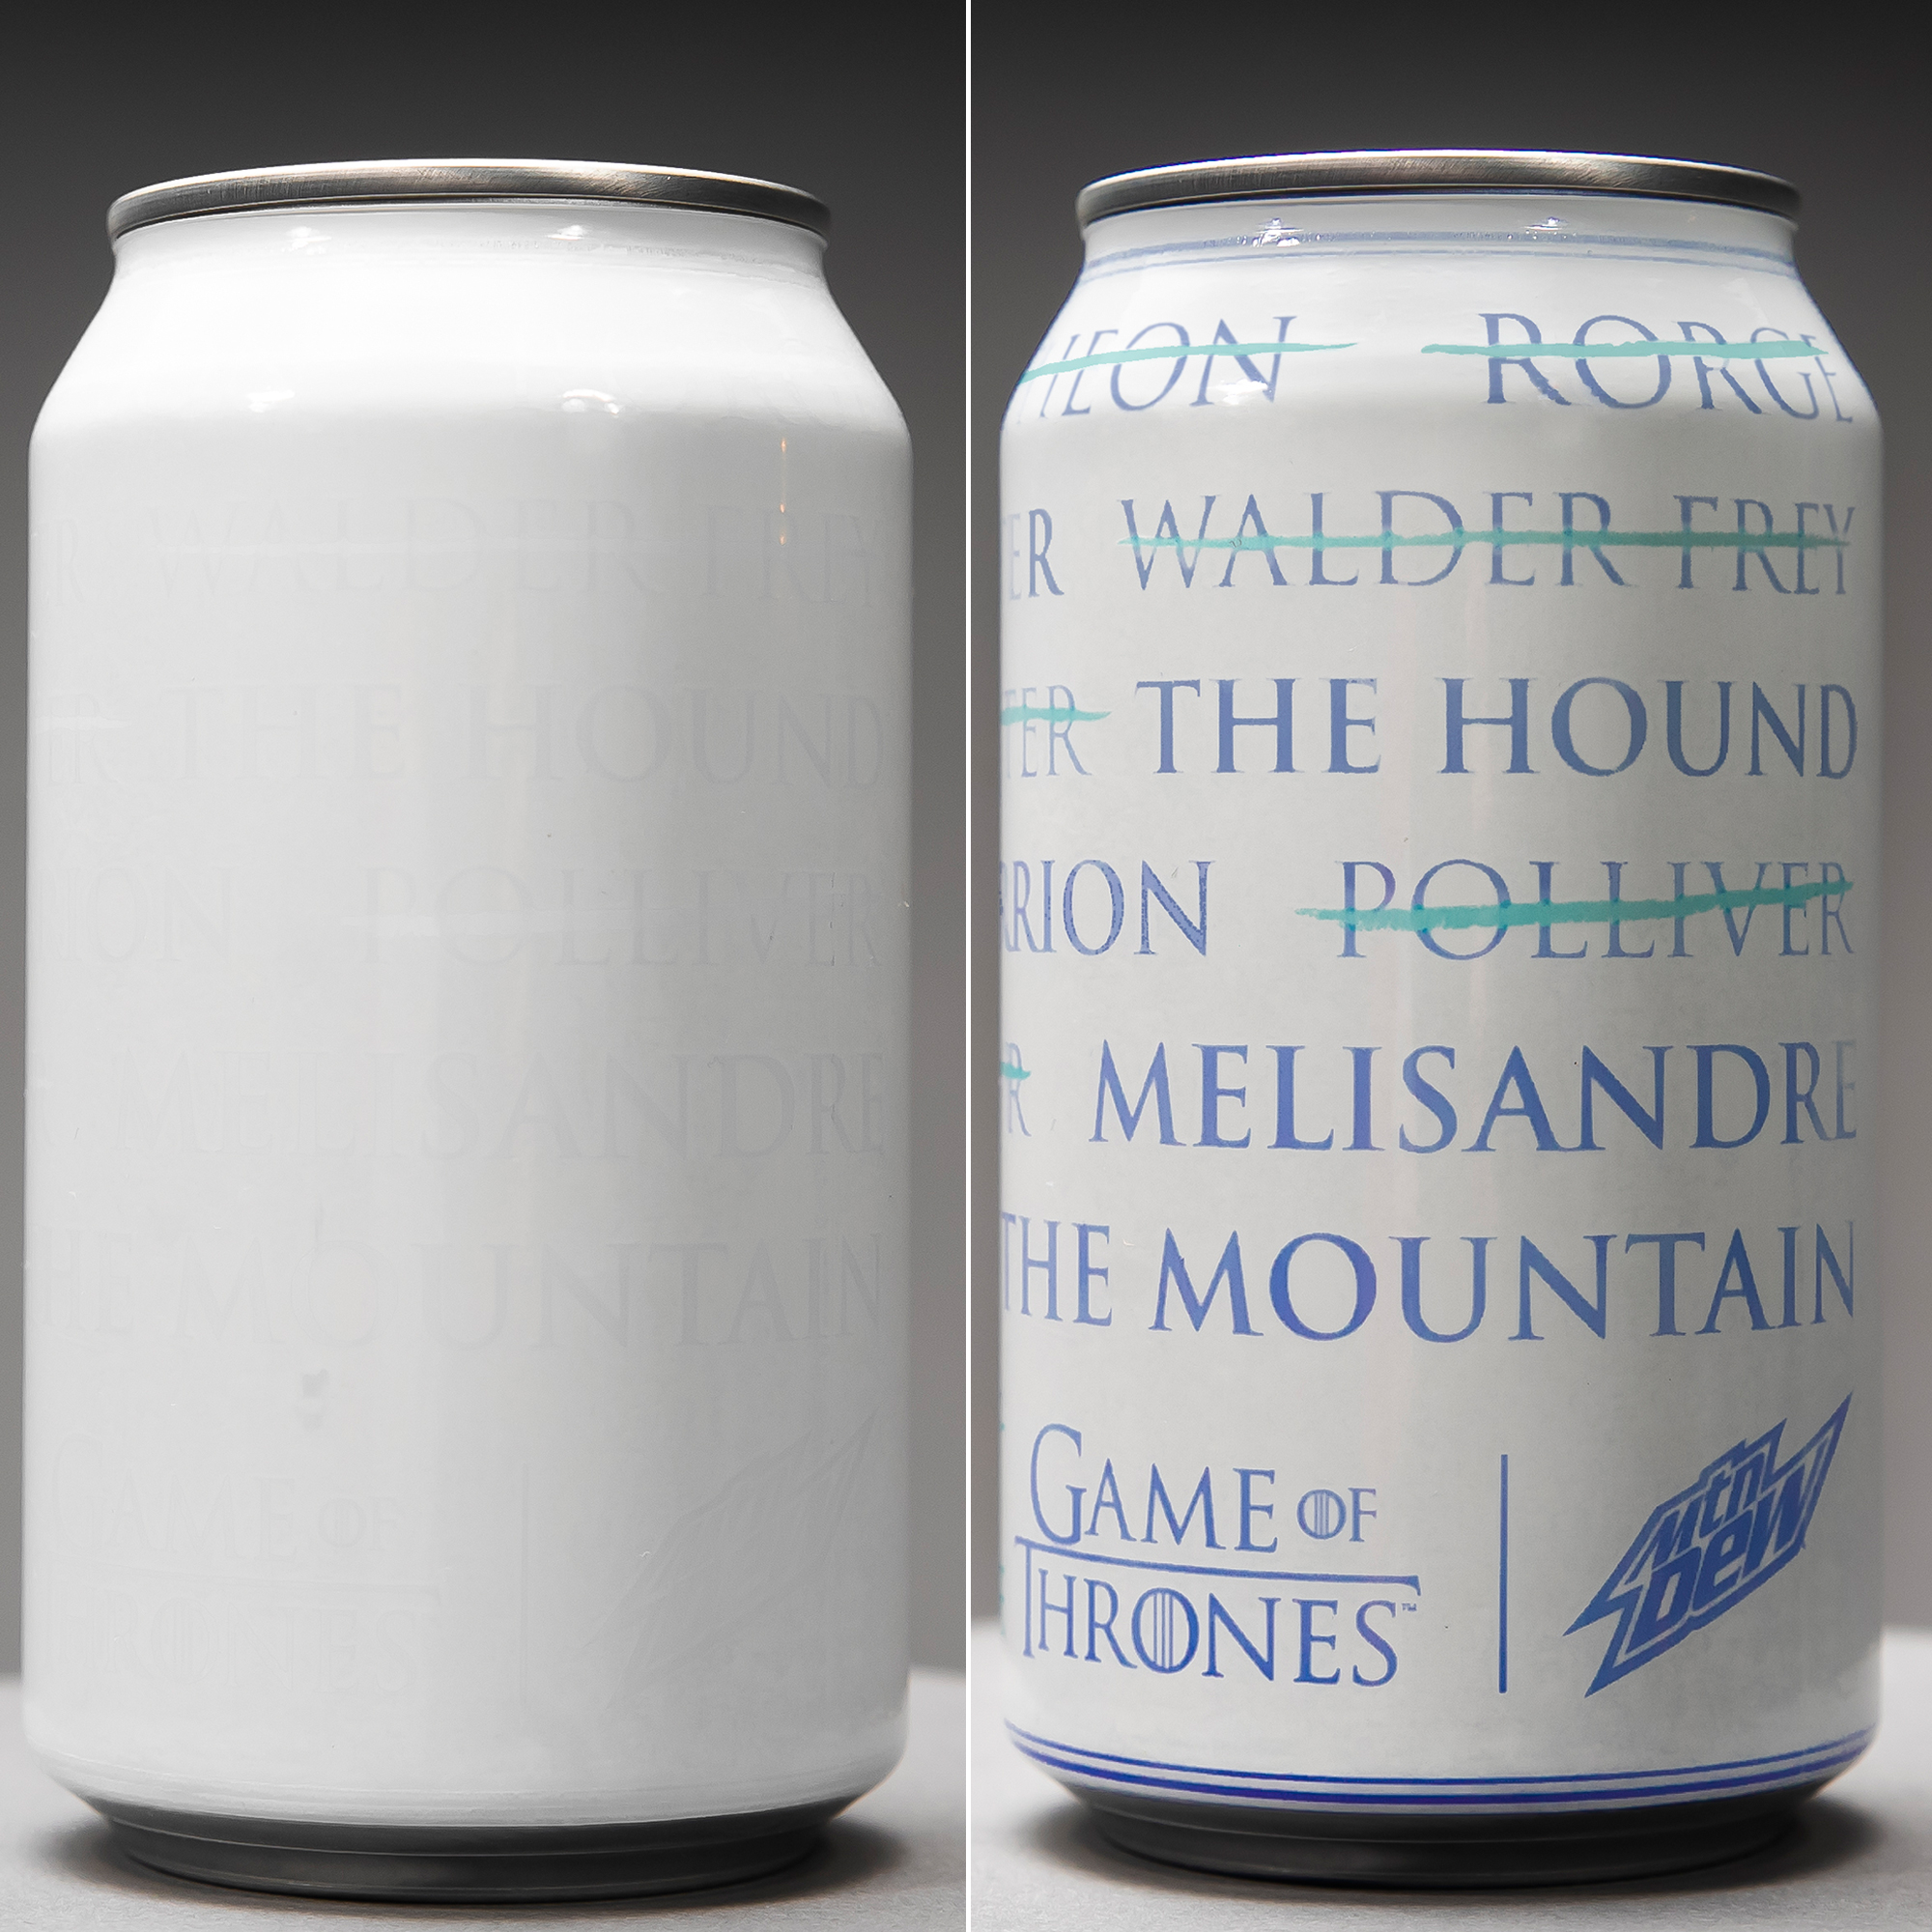 """Game of Thrones Final Season Food - The soda brand removed its iconic neon green """"face"""" revealing a stark white, brandless can – """"A Can Has No Name"""" – ahead of the debut of the HBO show's last season. """"A Can Has No Name"""" is a limited-run, special edition Mountain Dew vessel inspired by beloved character Arya Stark and her training with the Faceless Men of Braavos."""